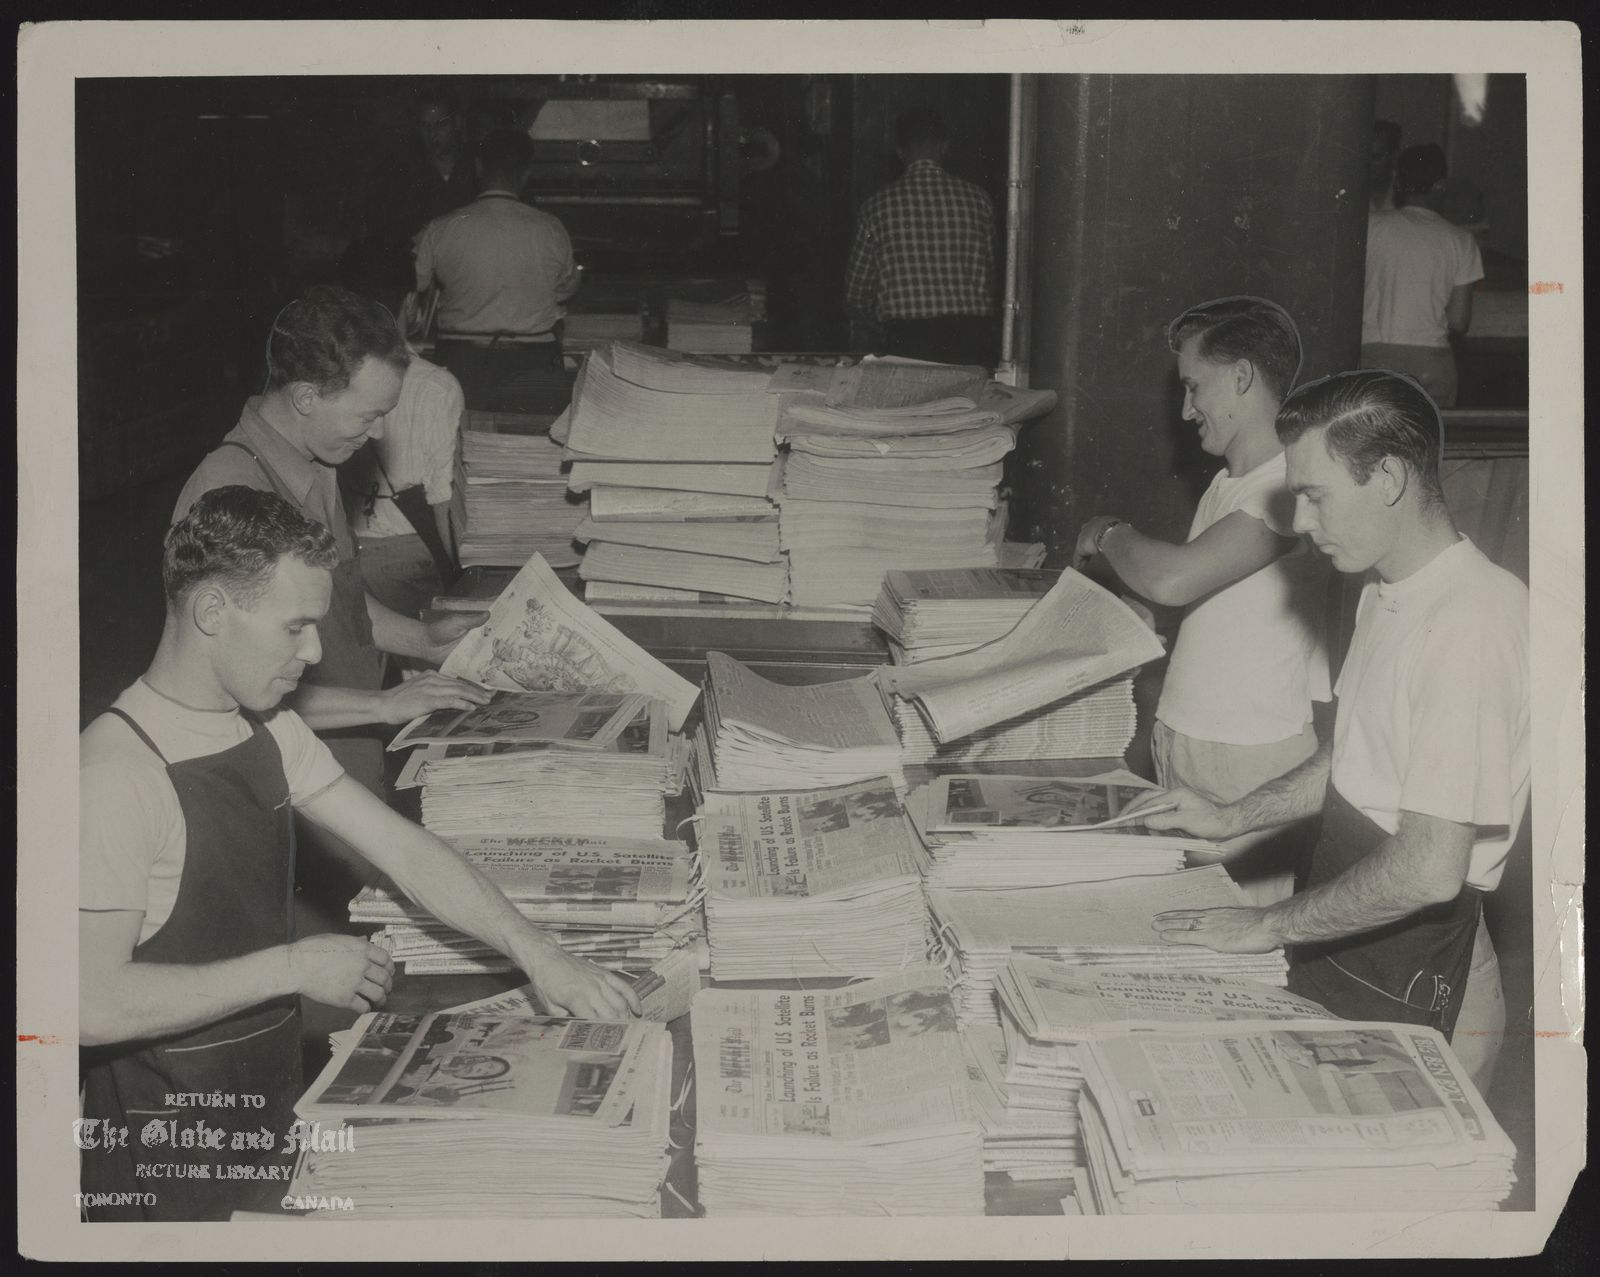 TORONTO GLOBE AND MAIL - HISTORICAL - PRODUCTION Production team assembling the Saturday, December 7, 1957 edition.